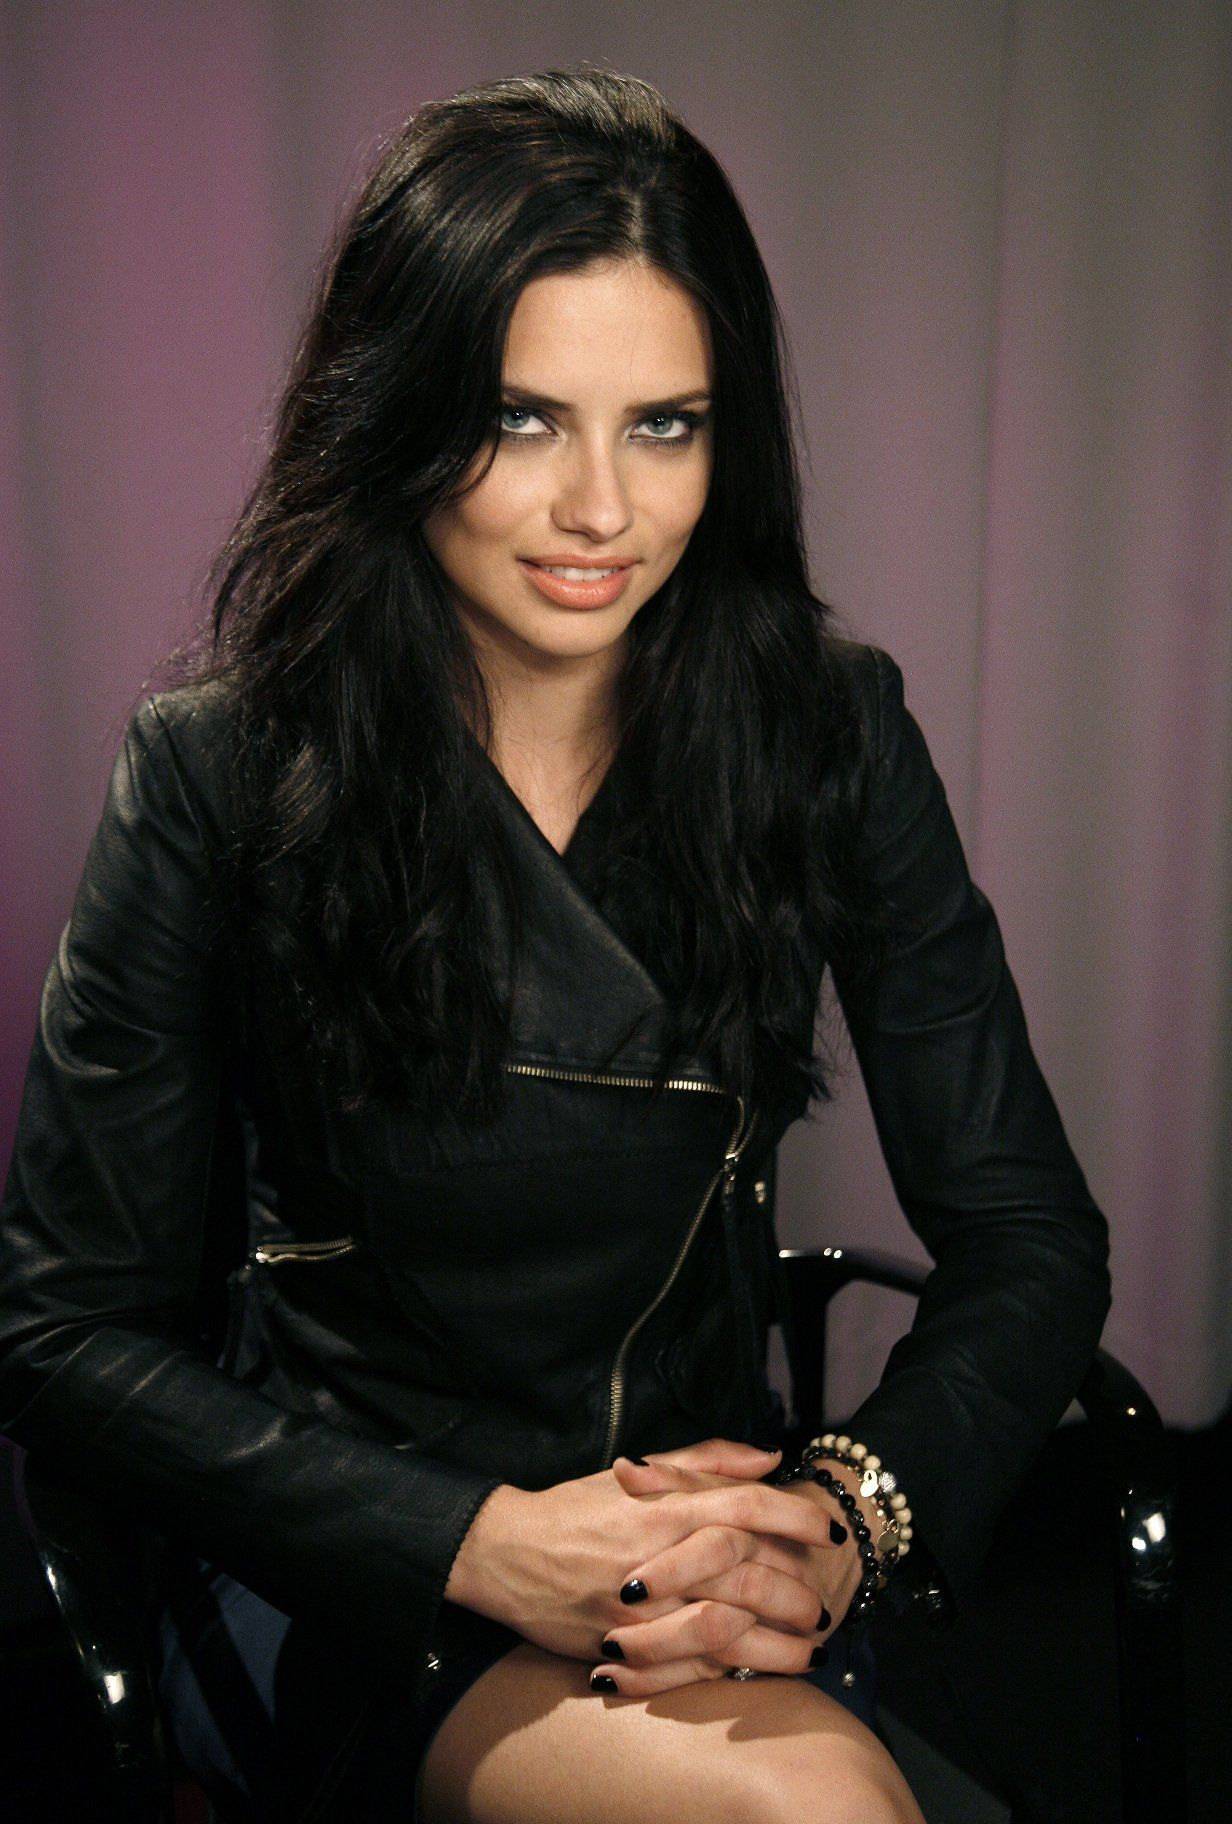 Adriana Lima Hands Down One Of My Favorite Models I Love -8567